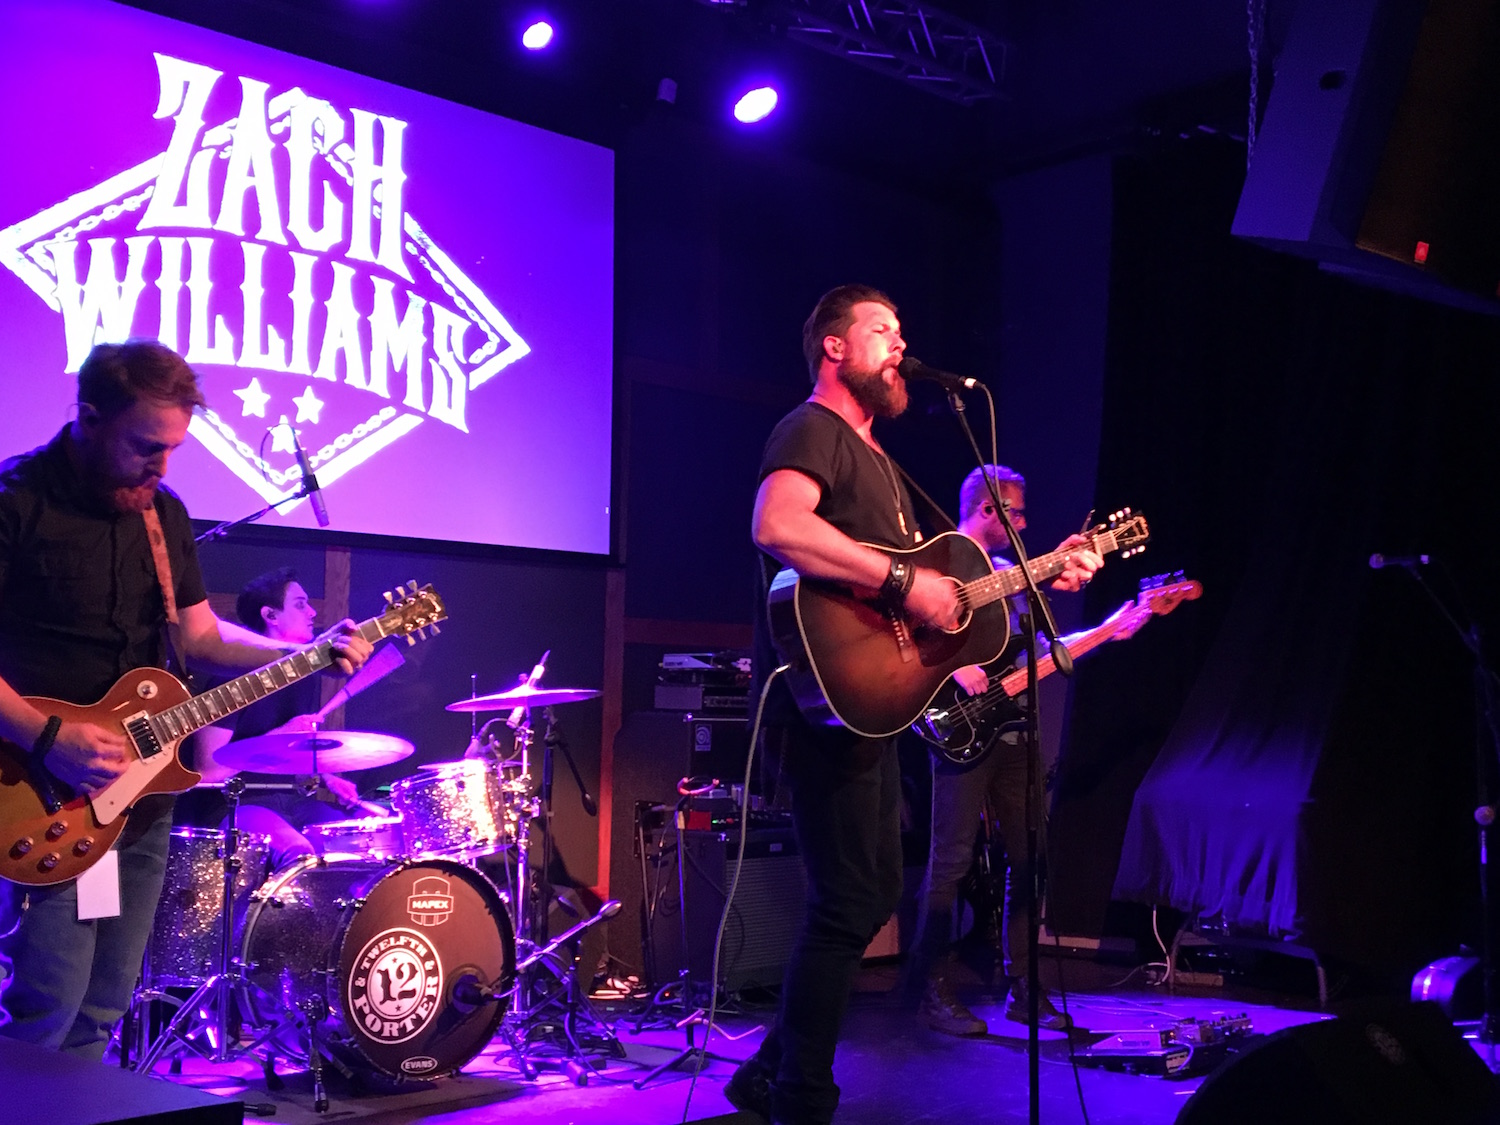 Zach Williams Musician Wikipedia